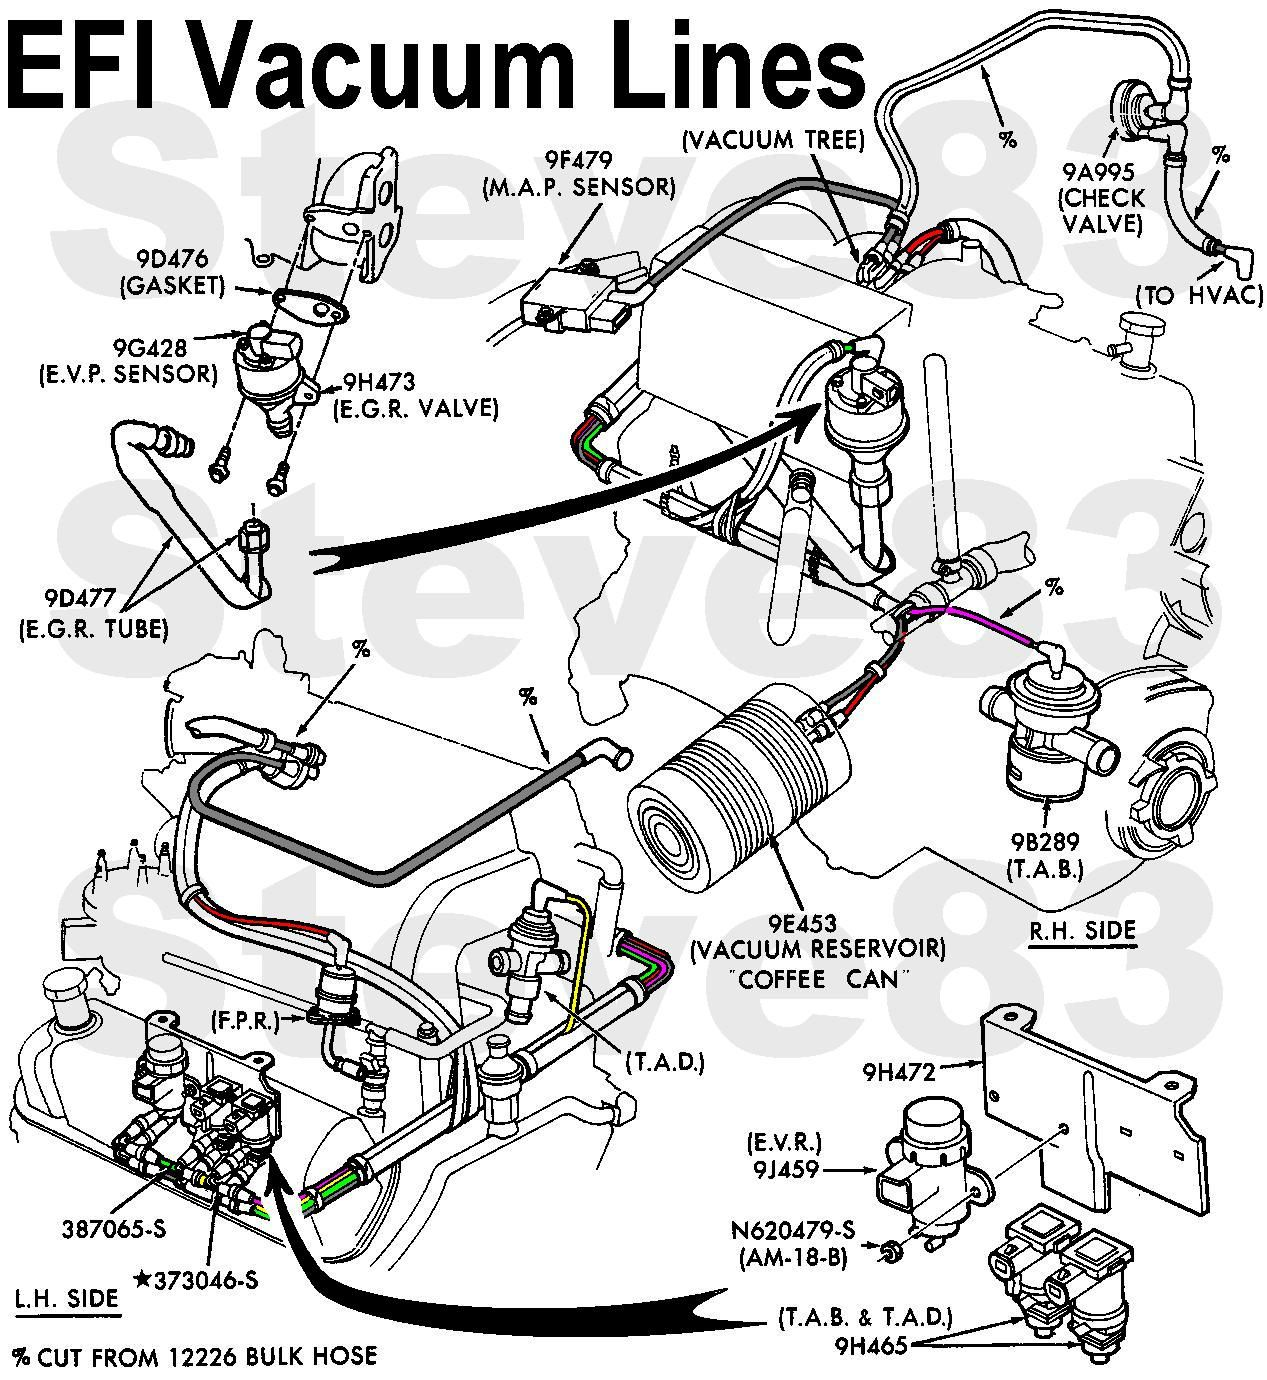 ford f150 engine diagram 1989 04 lariat 4x2 f150 stock 98 nascar rh pinterest com 2004 f150 fx4 engine diagram